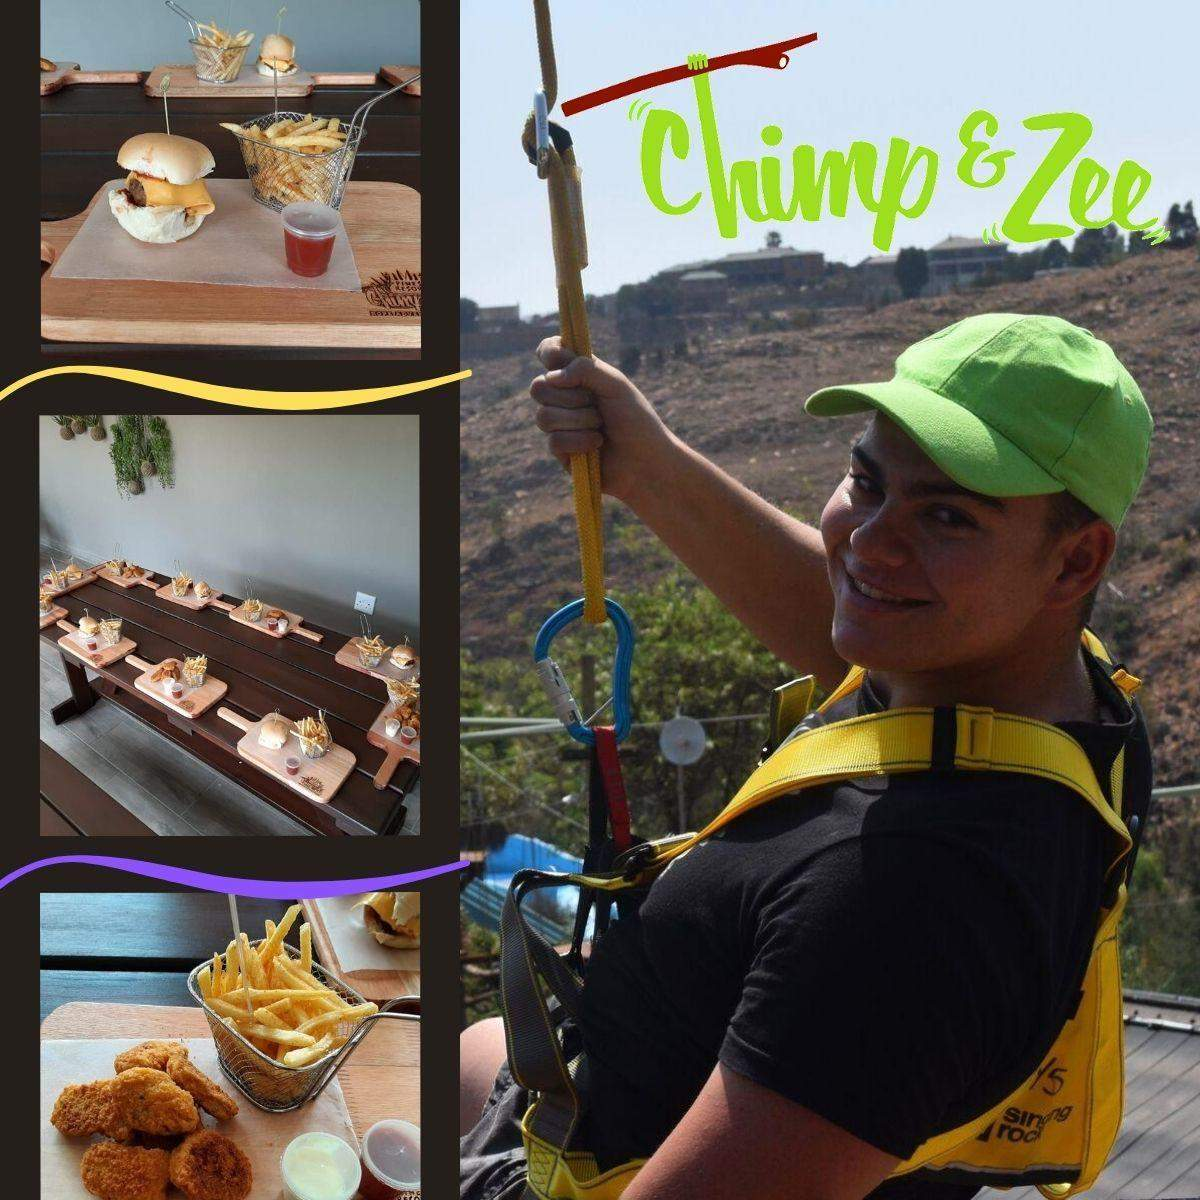 Win a Chimp n Zee party for 10 kids worth R2500